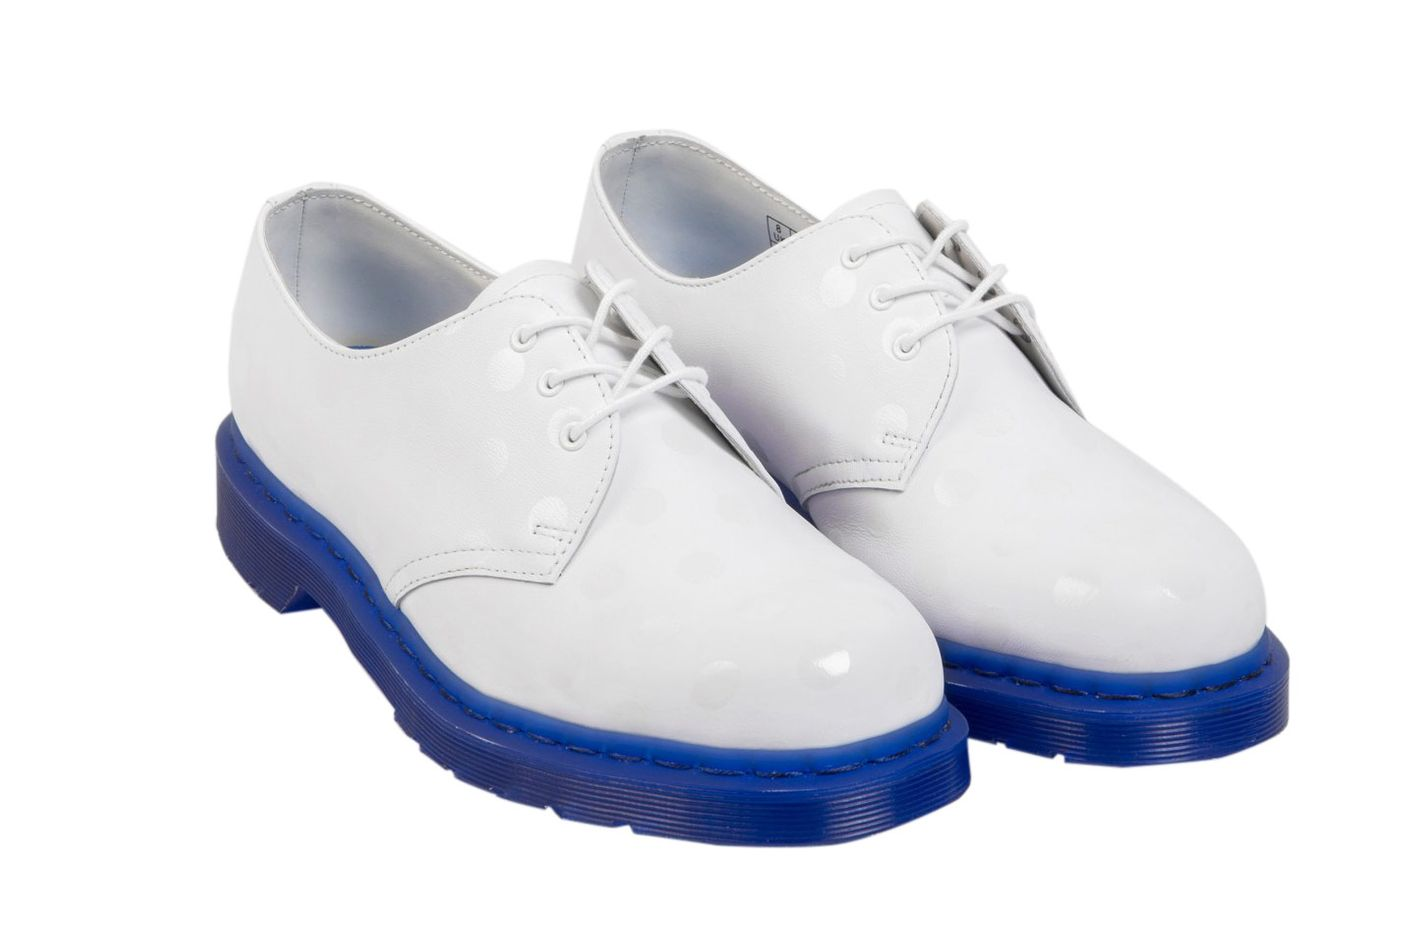 Dr. Martens x Colette Derby Shoes